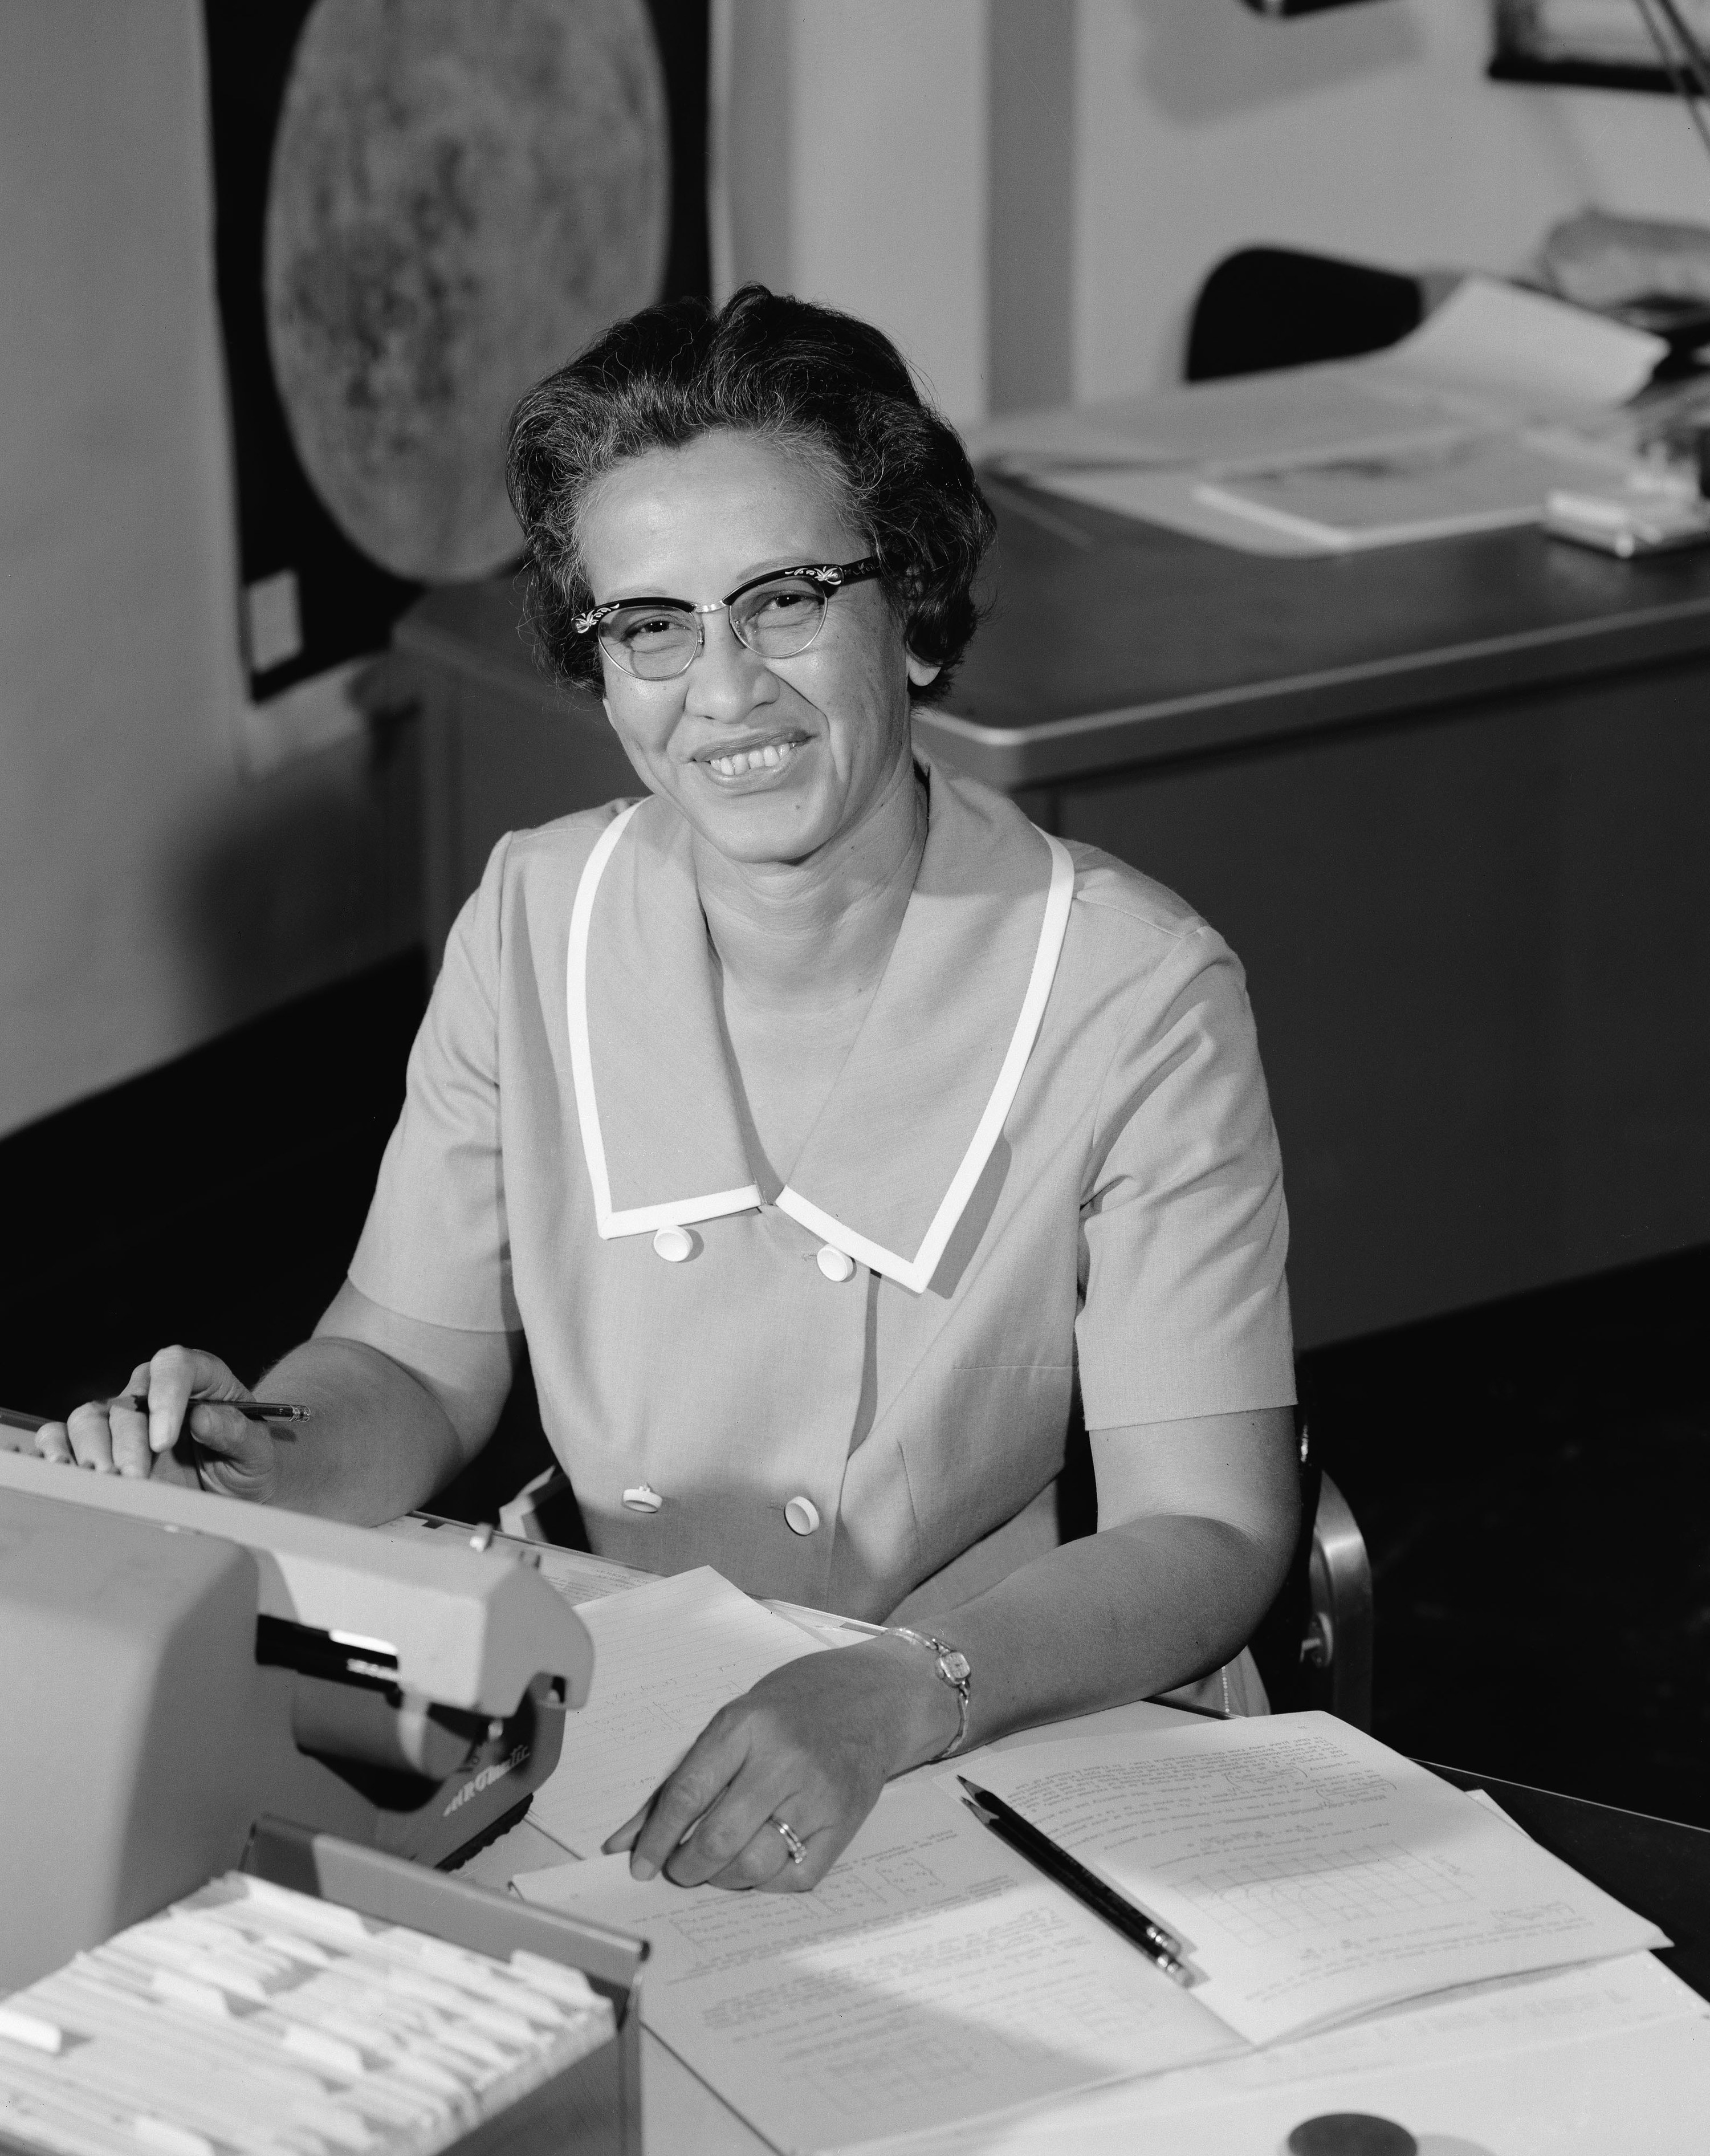 A woman in glasses and a short sleeve suit at a desk with paper, typewriter